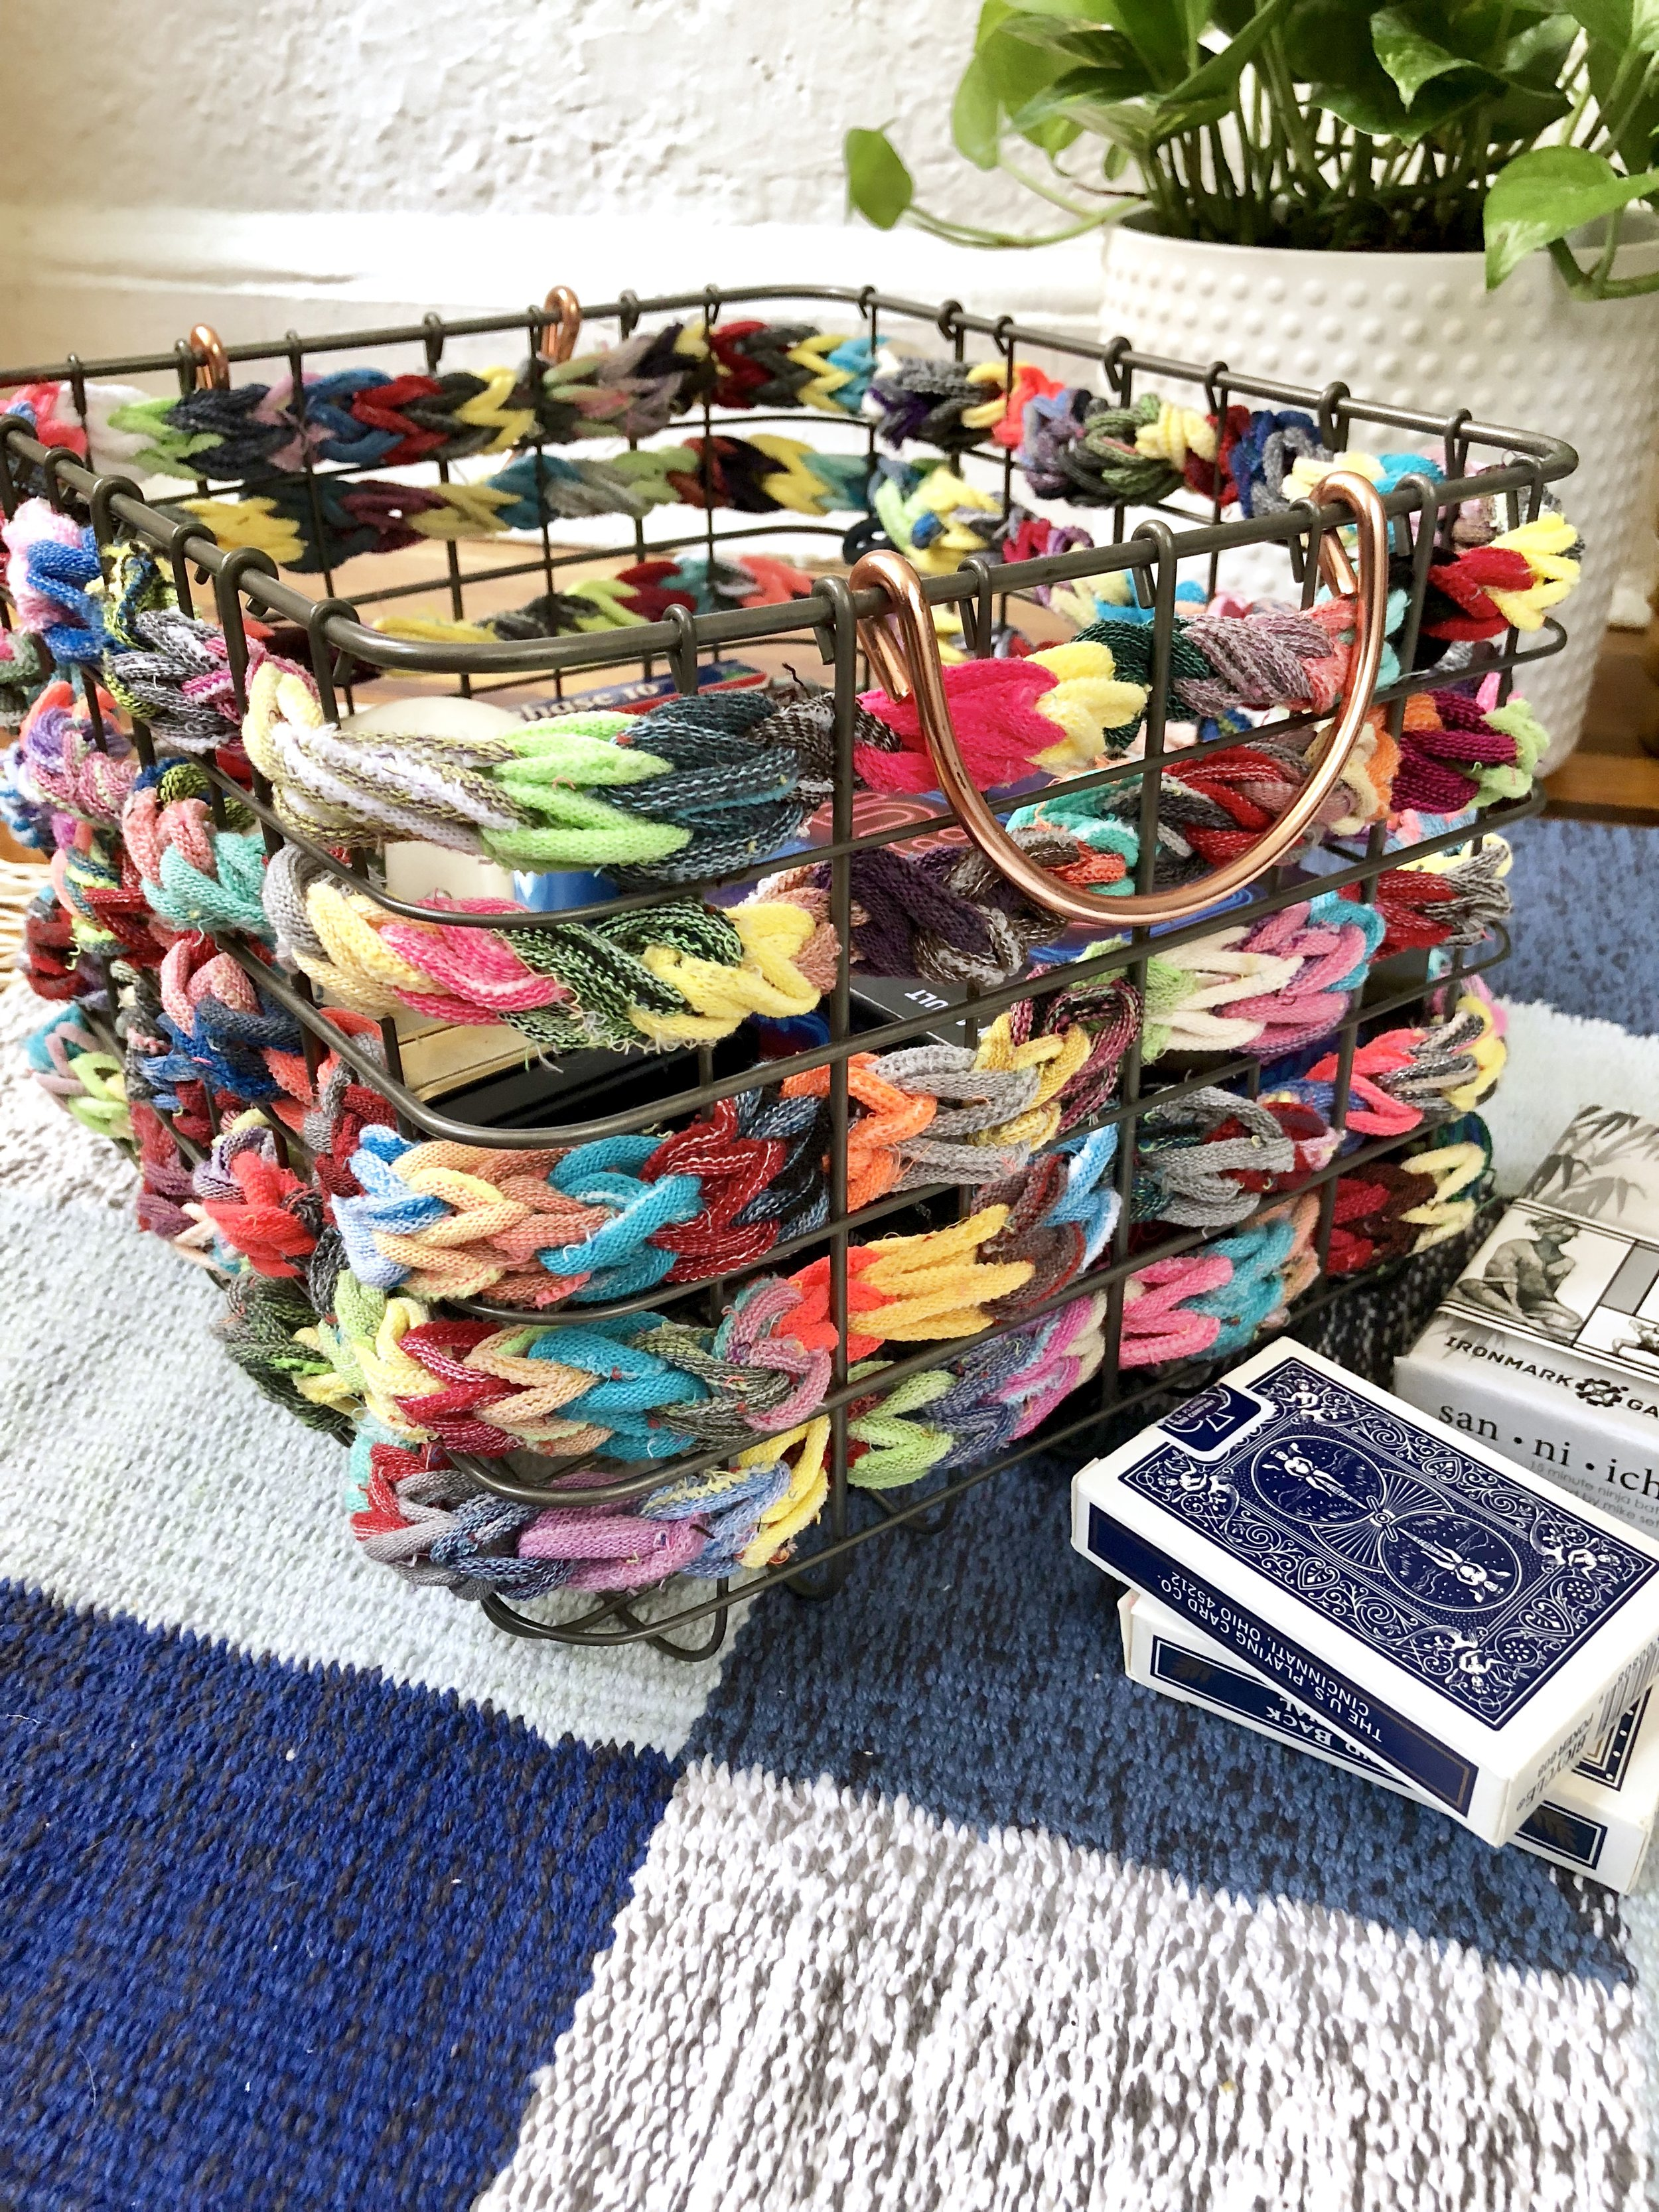 Throwback Summer Camp Crafts for Adults - We were inspired by old camp patches and got crafty with felt, made a larger than life God's eye with chunky yarn and turned a loopers finger weave into a basket up do!